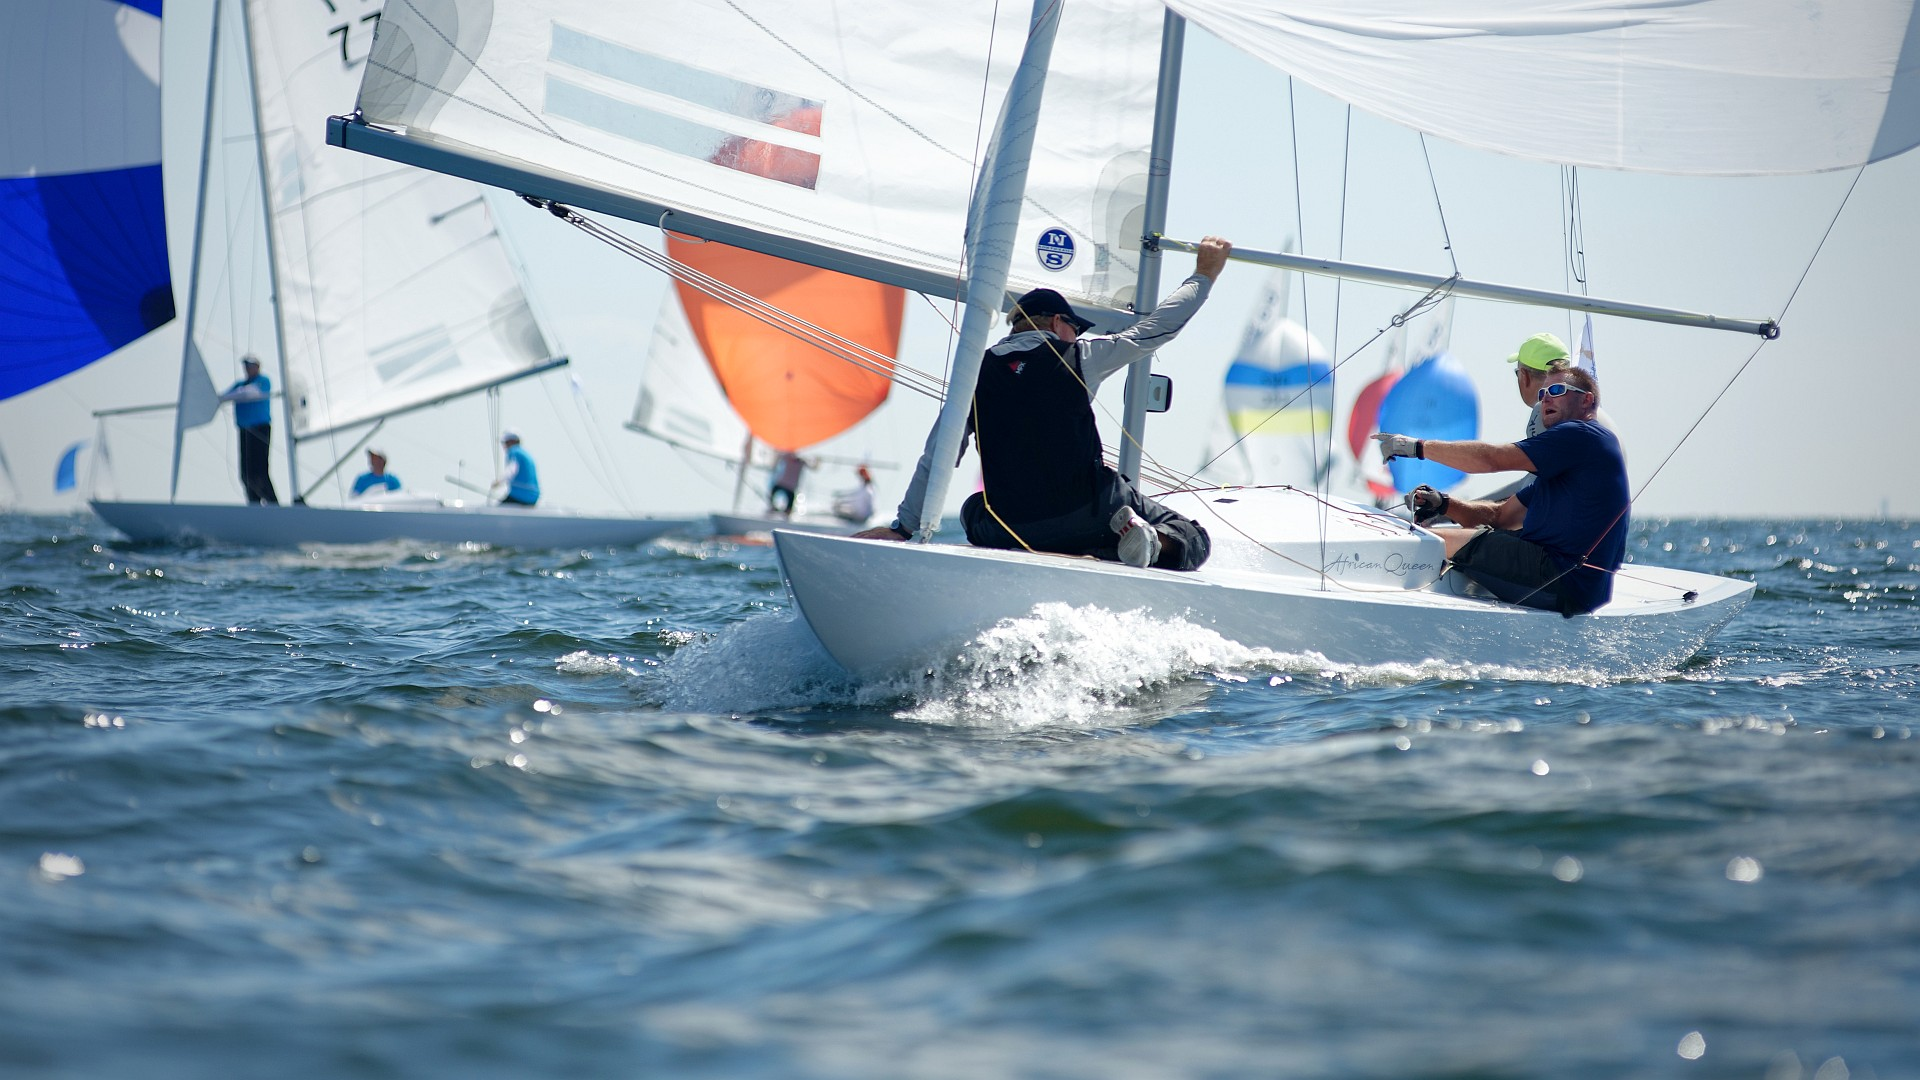 The Dragon Gold Cup 2018in Helsinki from the 20th to 28th of July 2018is supported with Sailpix photos on this page. Sixth and final day at the Dragon Gold Cup. Two races (4 and 5) were sailed. Last race in best sailing conditions with sun and strong wind. See final results HERE.  Photos (110) […]